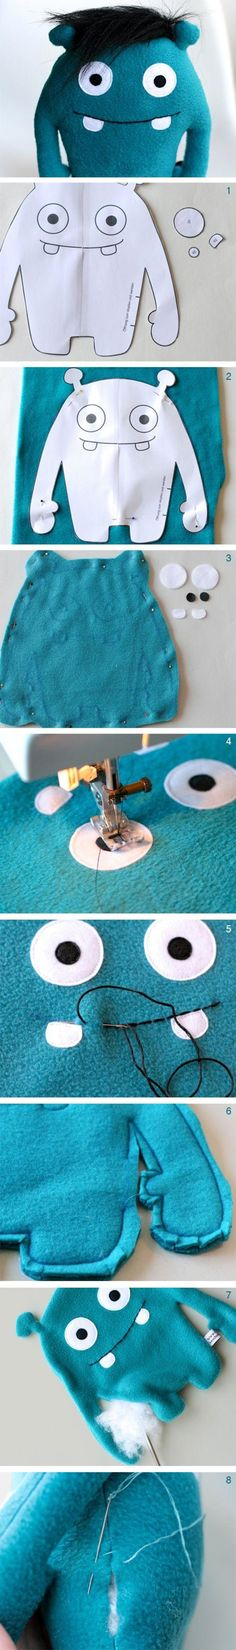 DIY sewing instructions for a cute monster made of plush, DIY toys / diy sewing tutorial for a cuddl Sewing For Kids, Diy For Kids, Felt Crafts, Kids Crafts, Sewing Crafts, Sewing Projects, Sewing Tutorials, Ugly Dolls, Monster Dolls